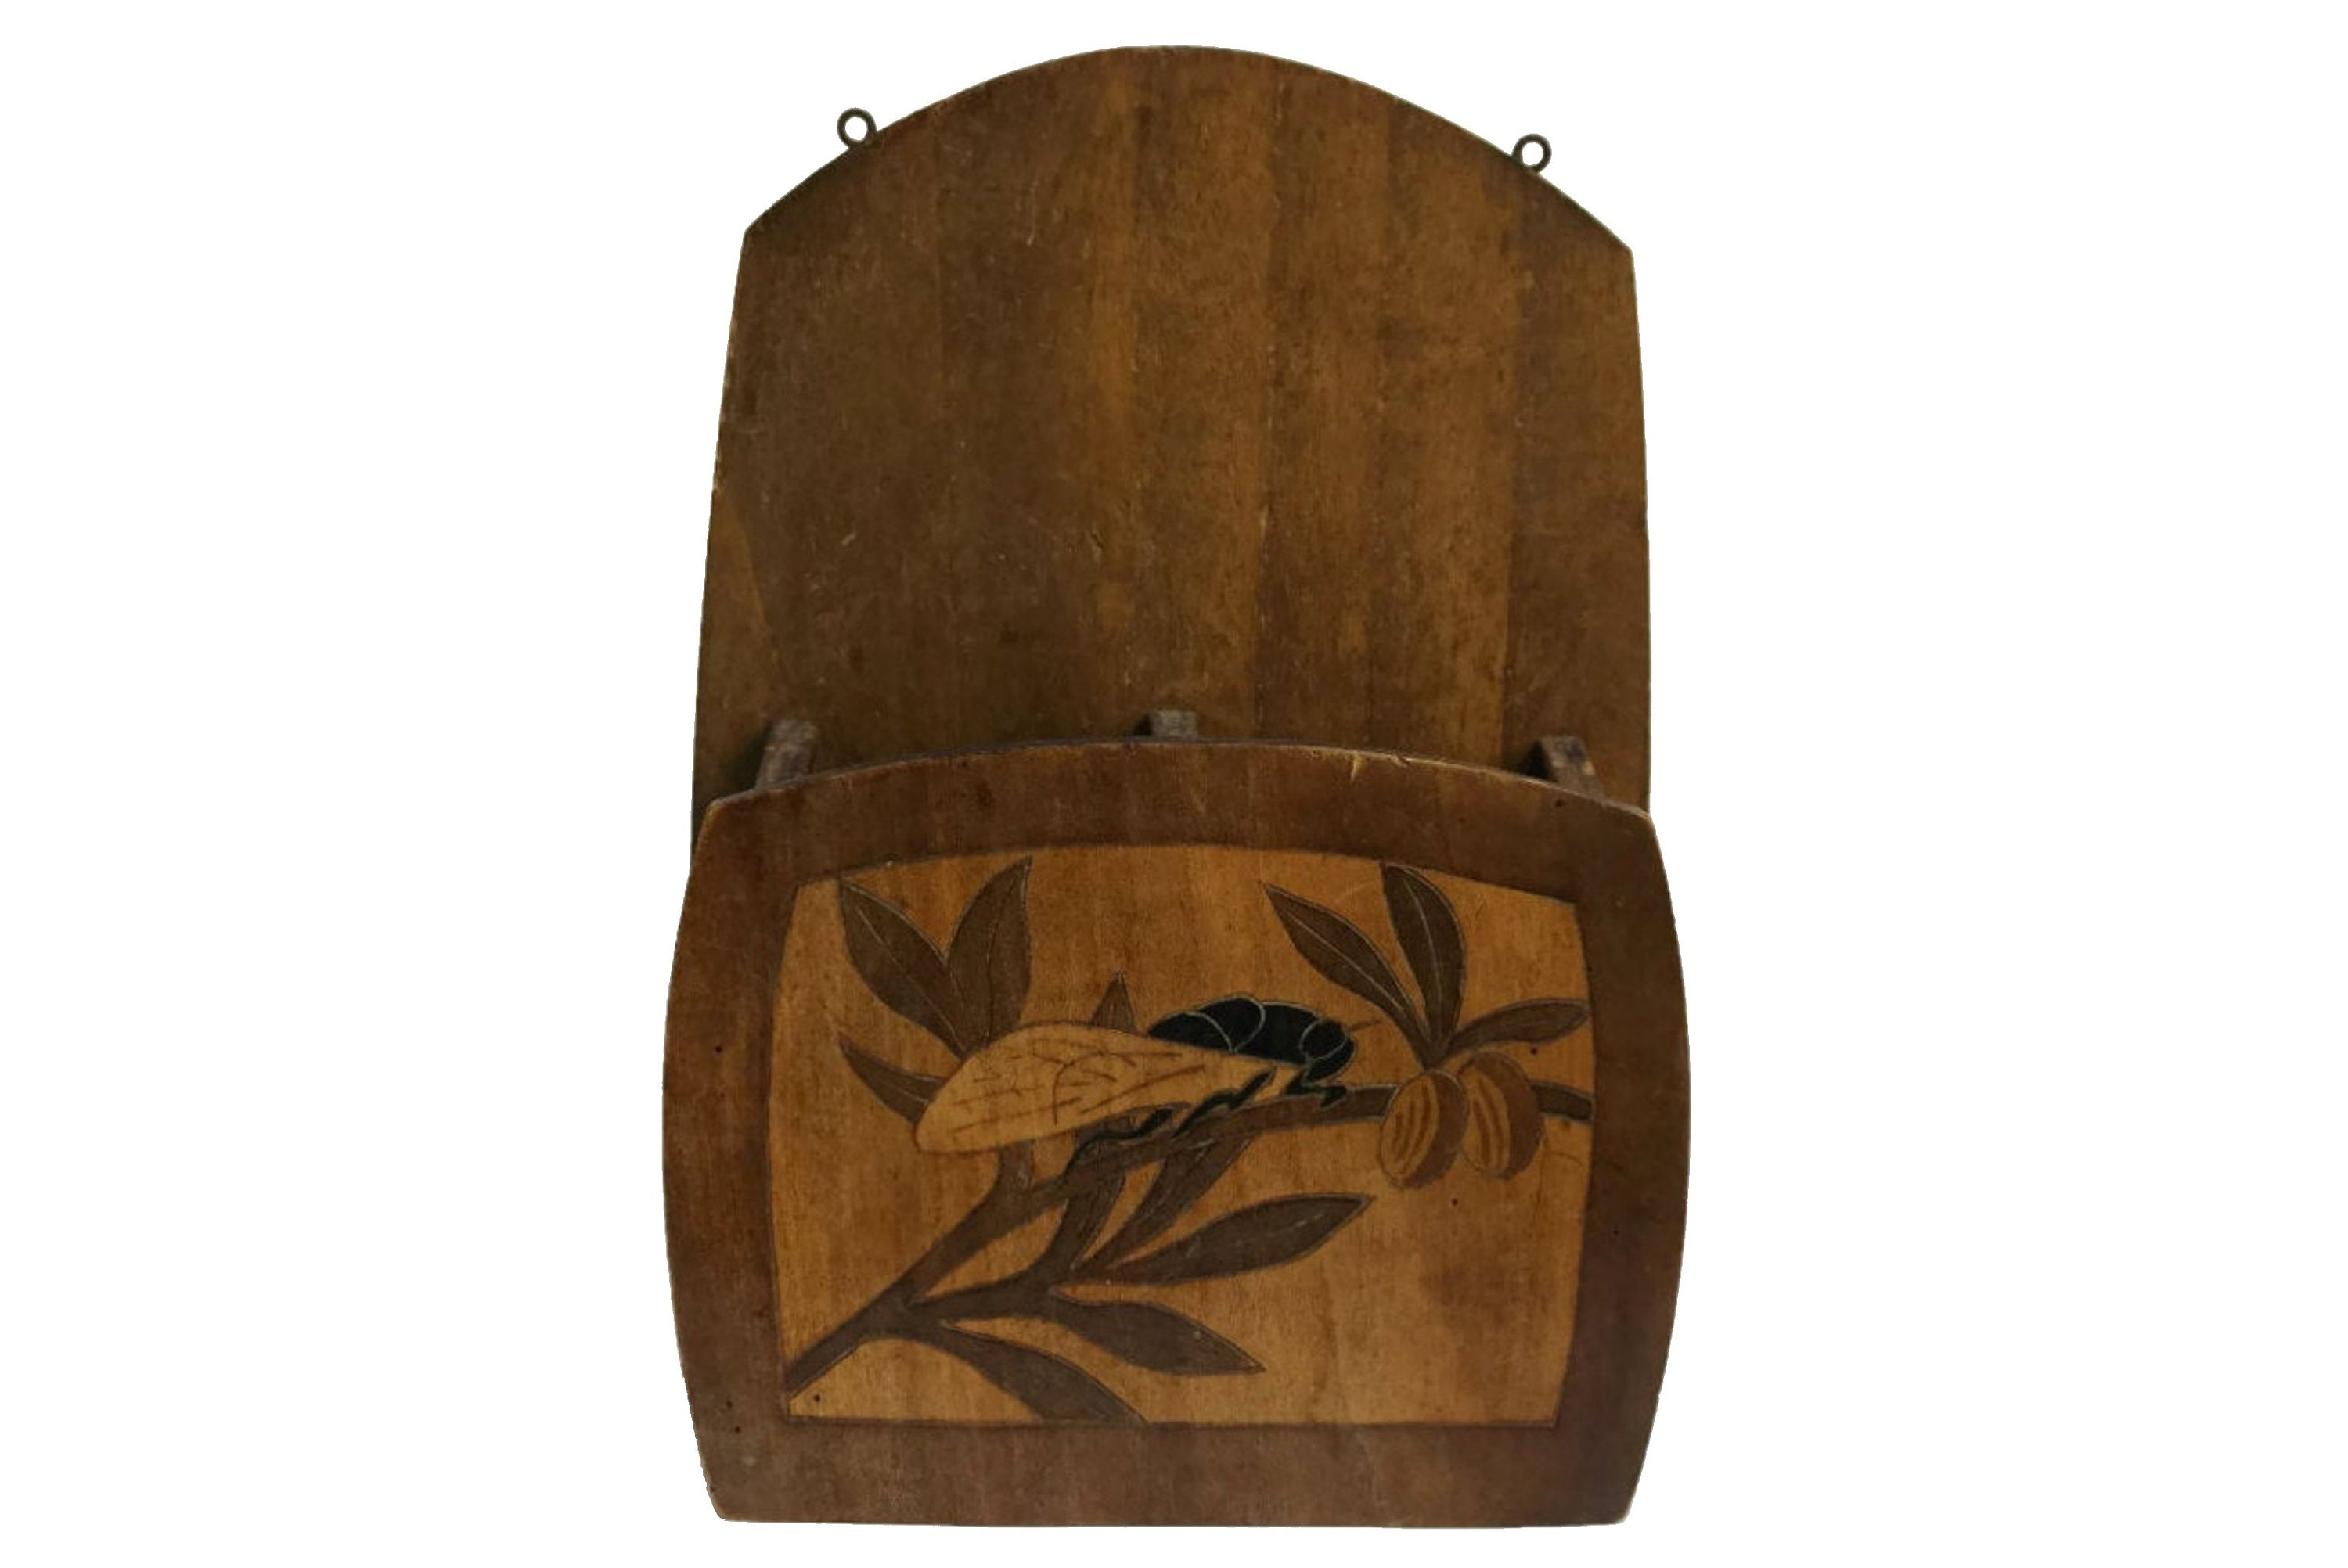 Wall Mail Organizer With Cicada And Olive Branch French Provence Kitchen Decor